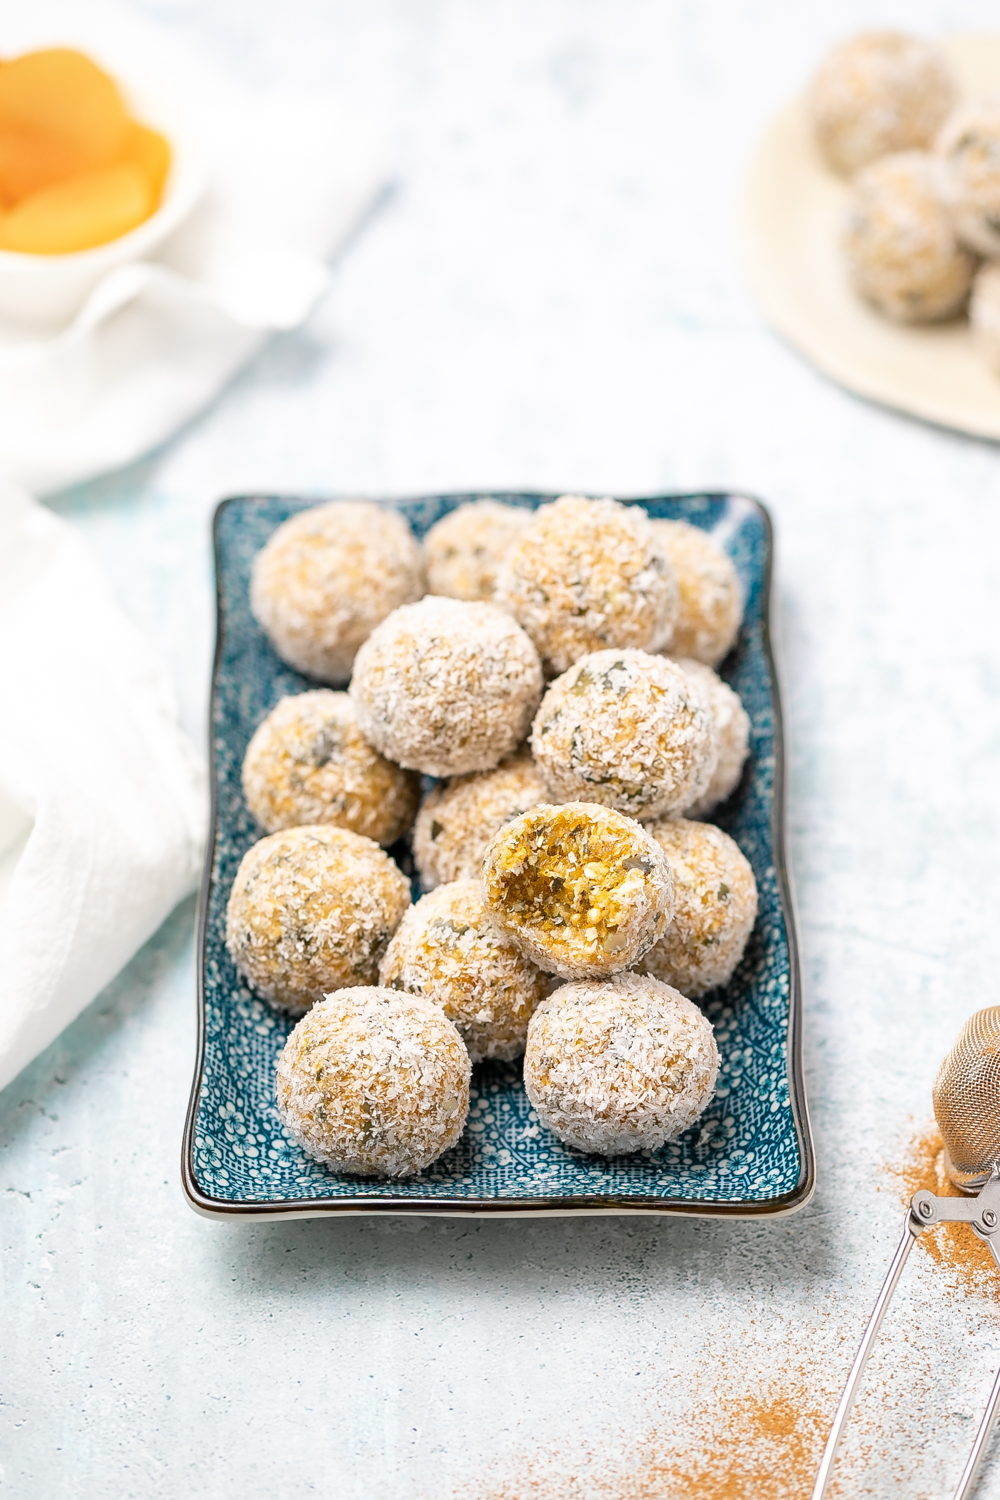 small blue rectangular plate of apricot bliss balls rolled in desiccated coconut, dish of honey in background